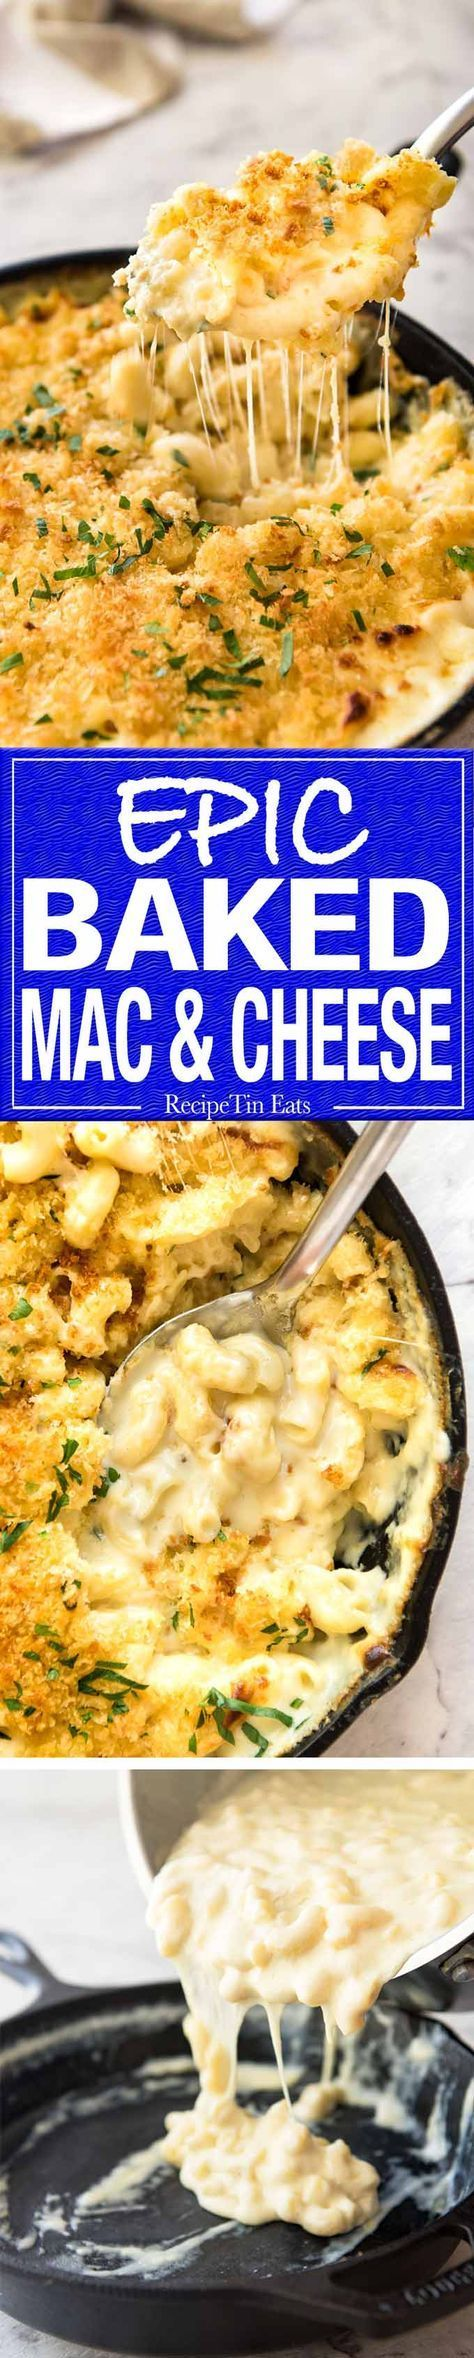 The ultimate classic Baked Mac and Cheese, with an insane cheesy sauce and topped with an irresistible golden, buttery breadcrumb topping. http://recipetineats.com